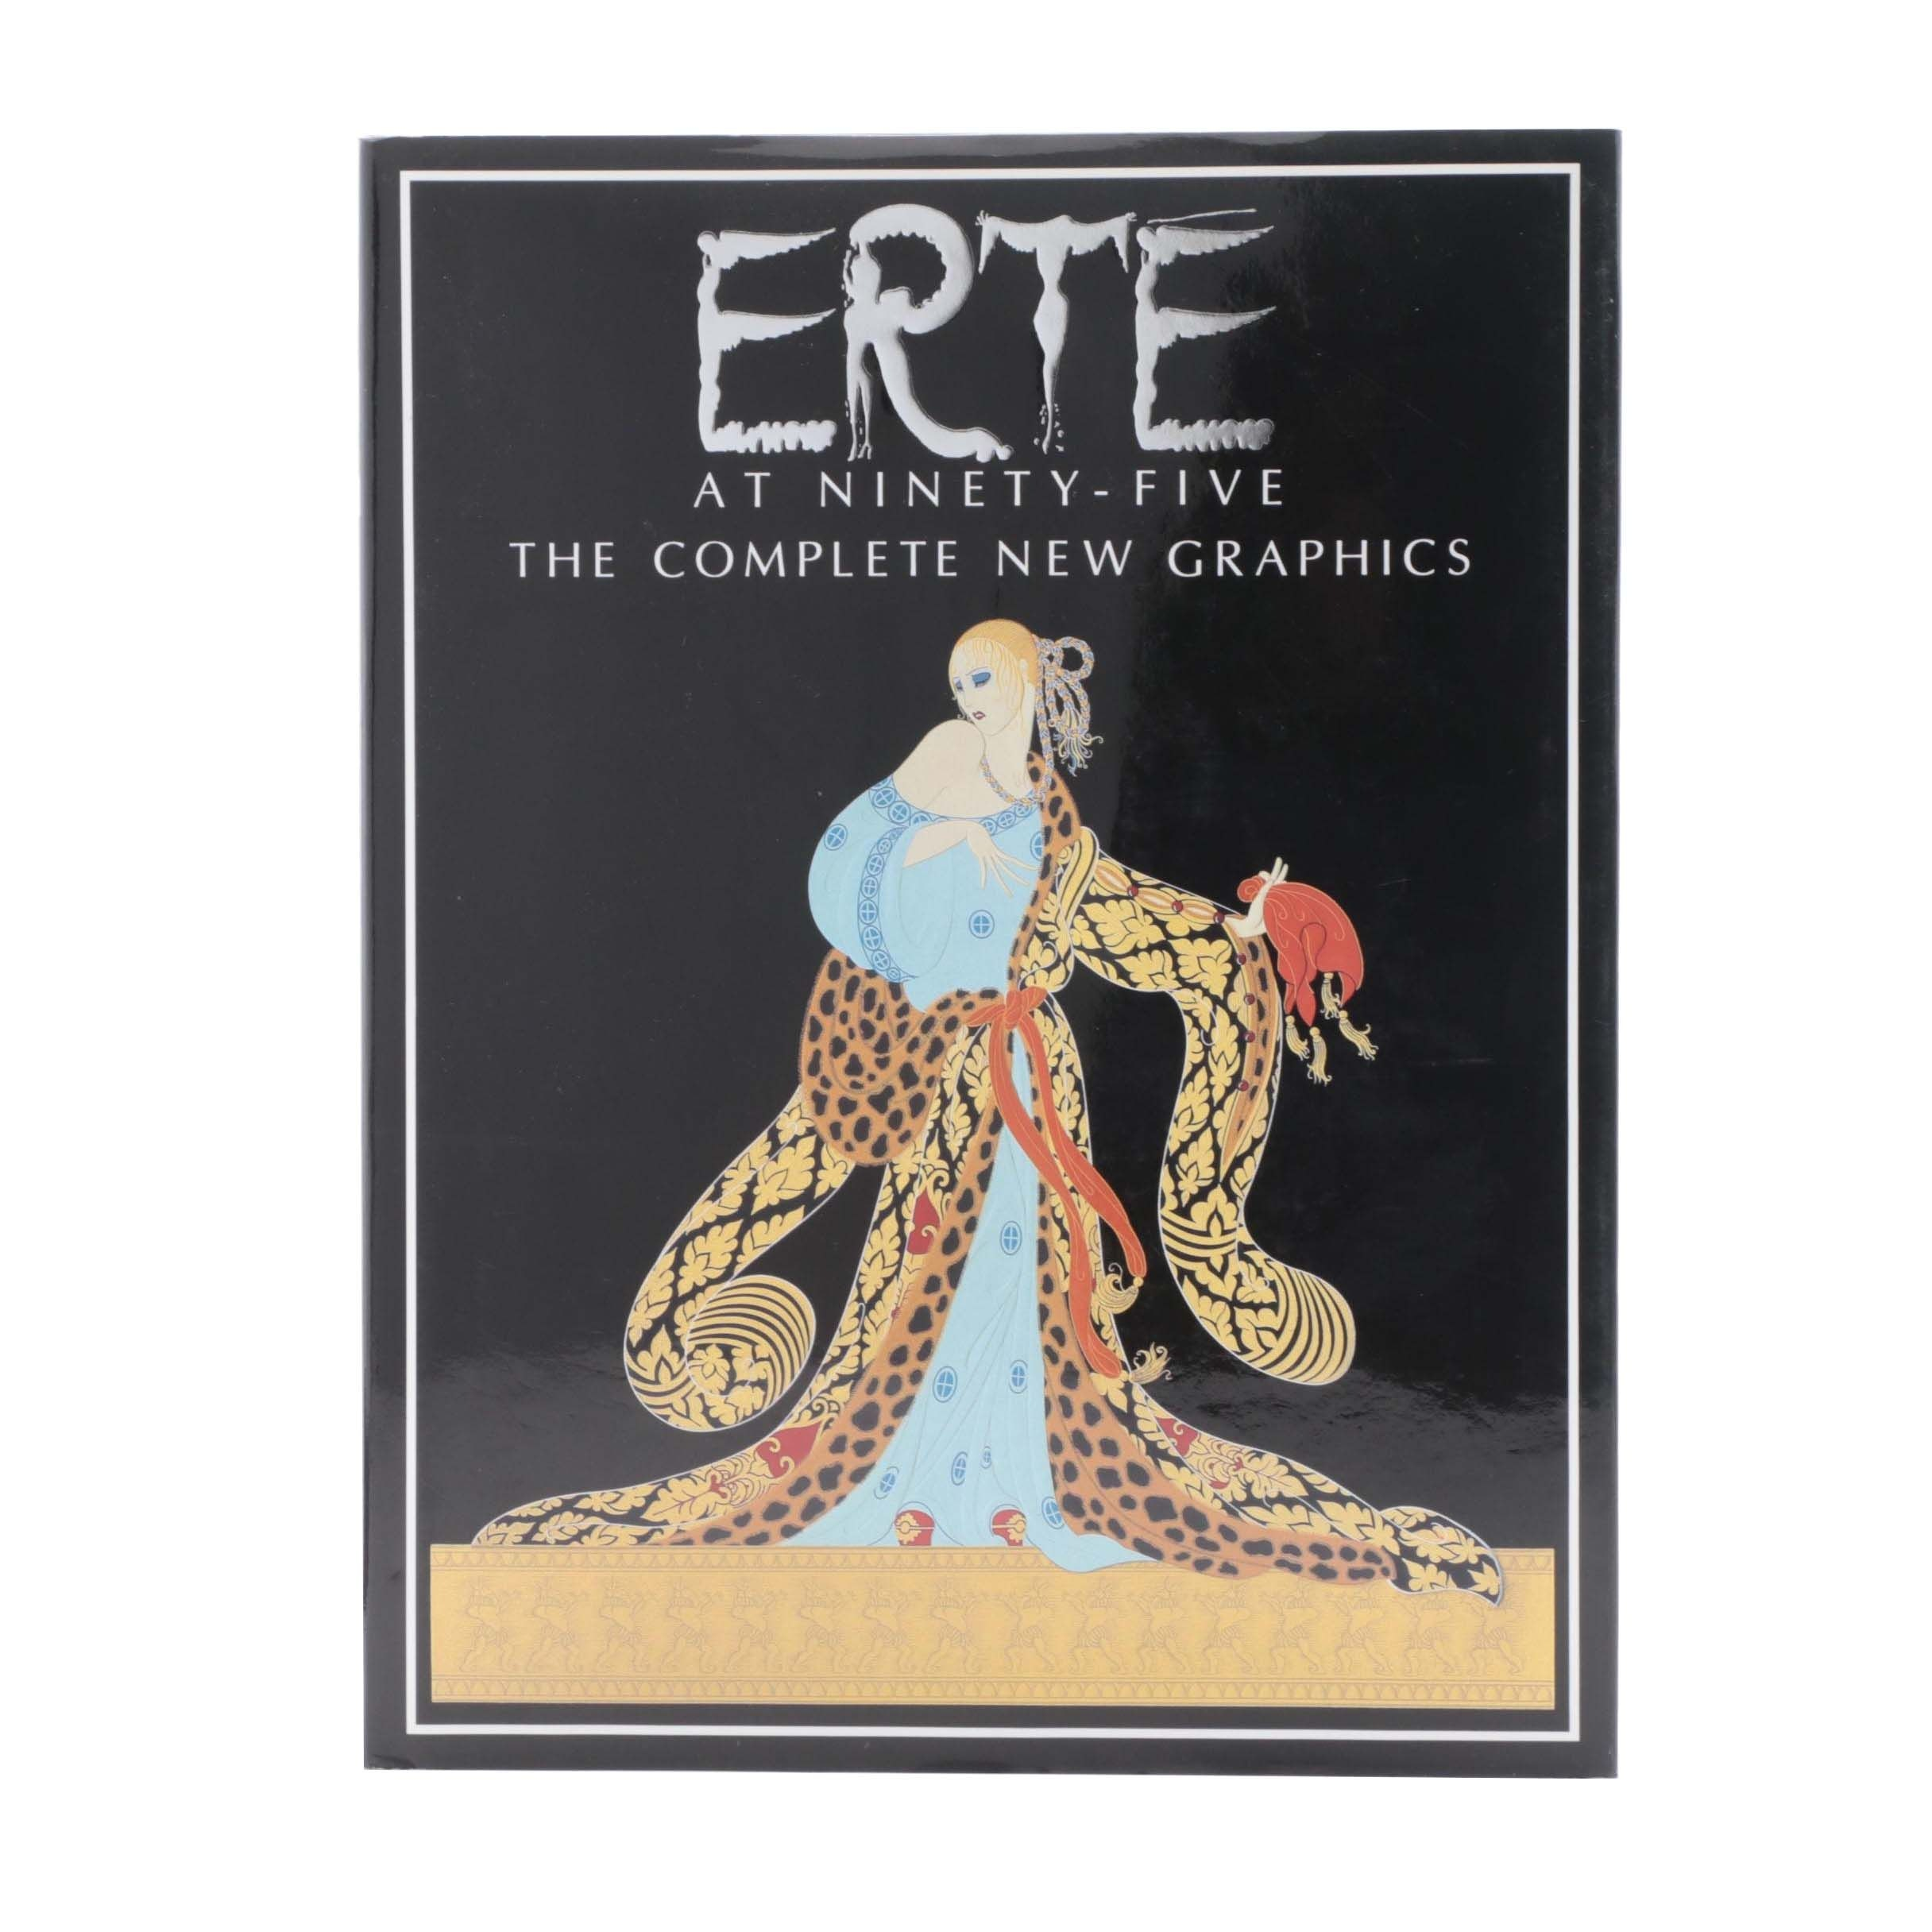 """1987 Signed First Edition """"Erté at Ninety-Five"""""""